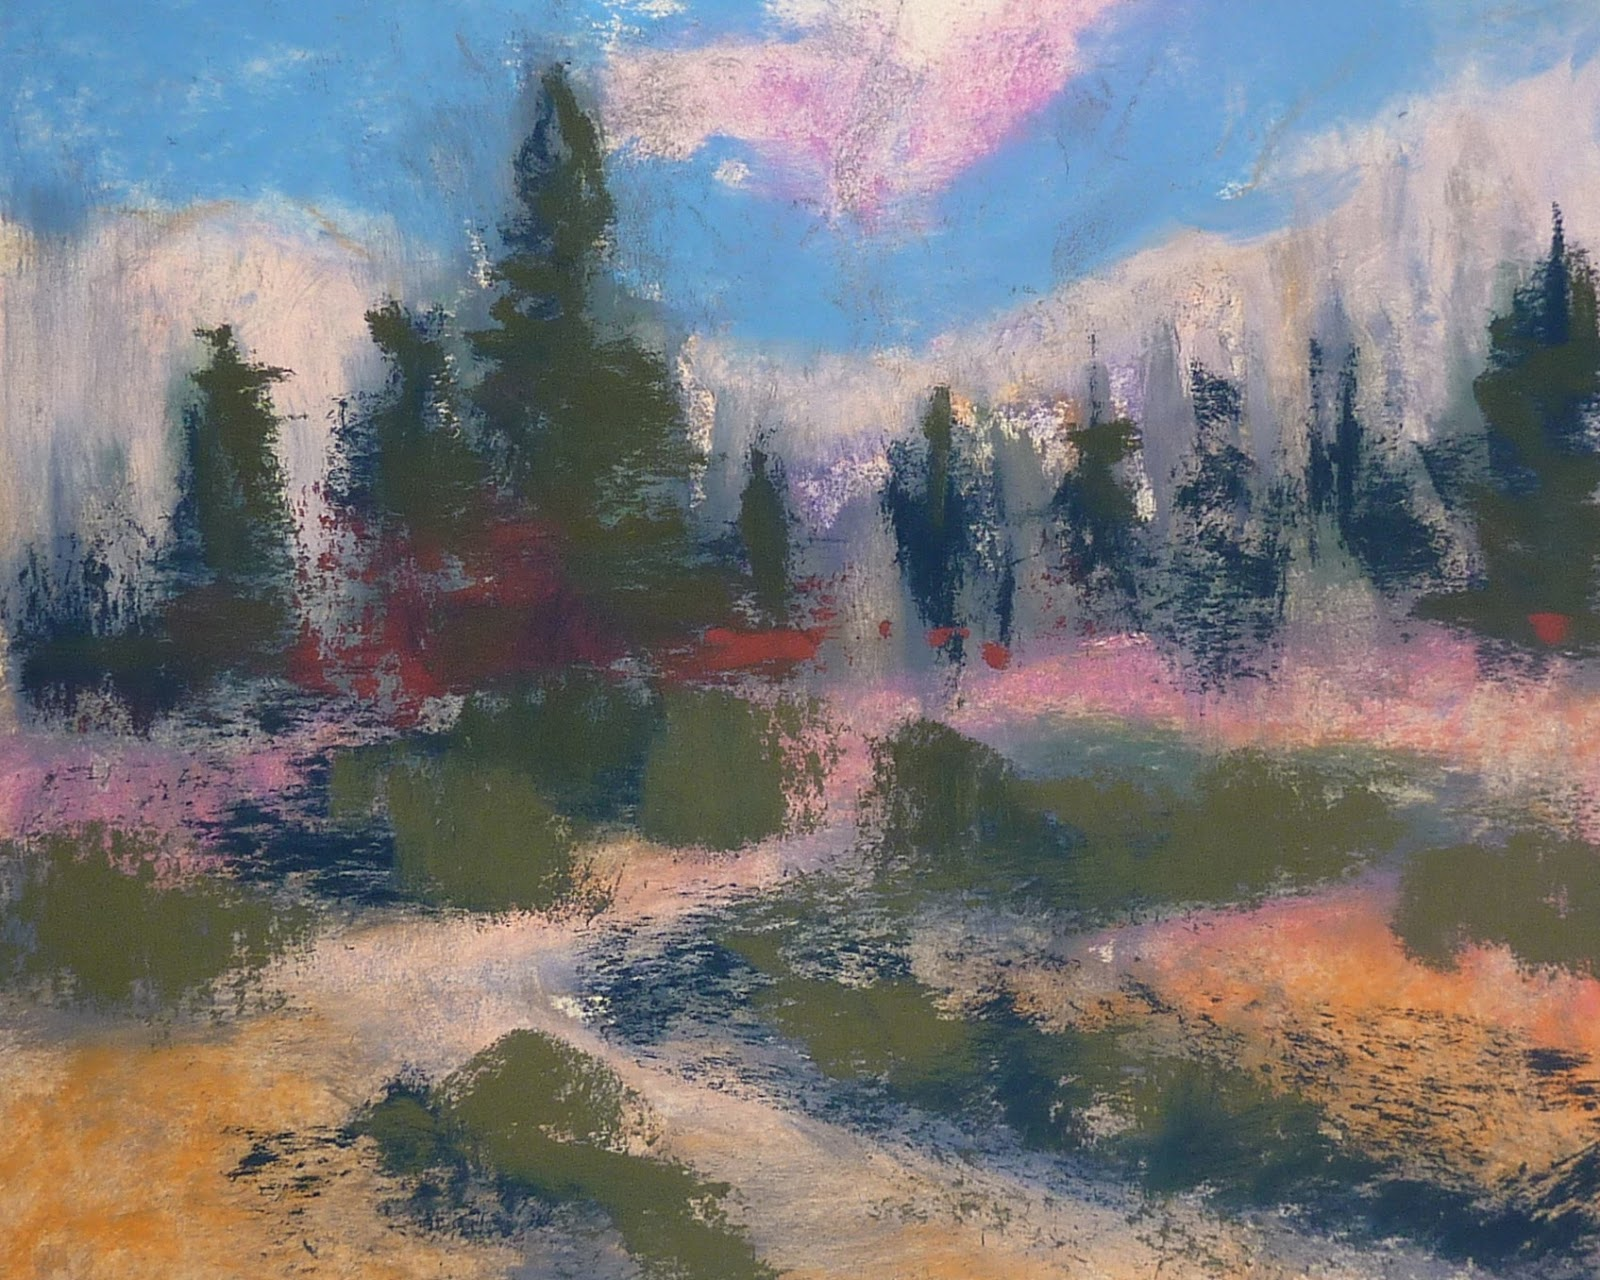 Pastel Painting Using Alcohol